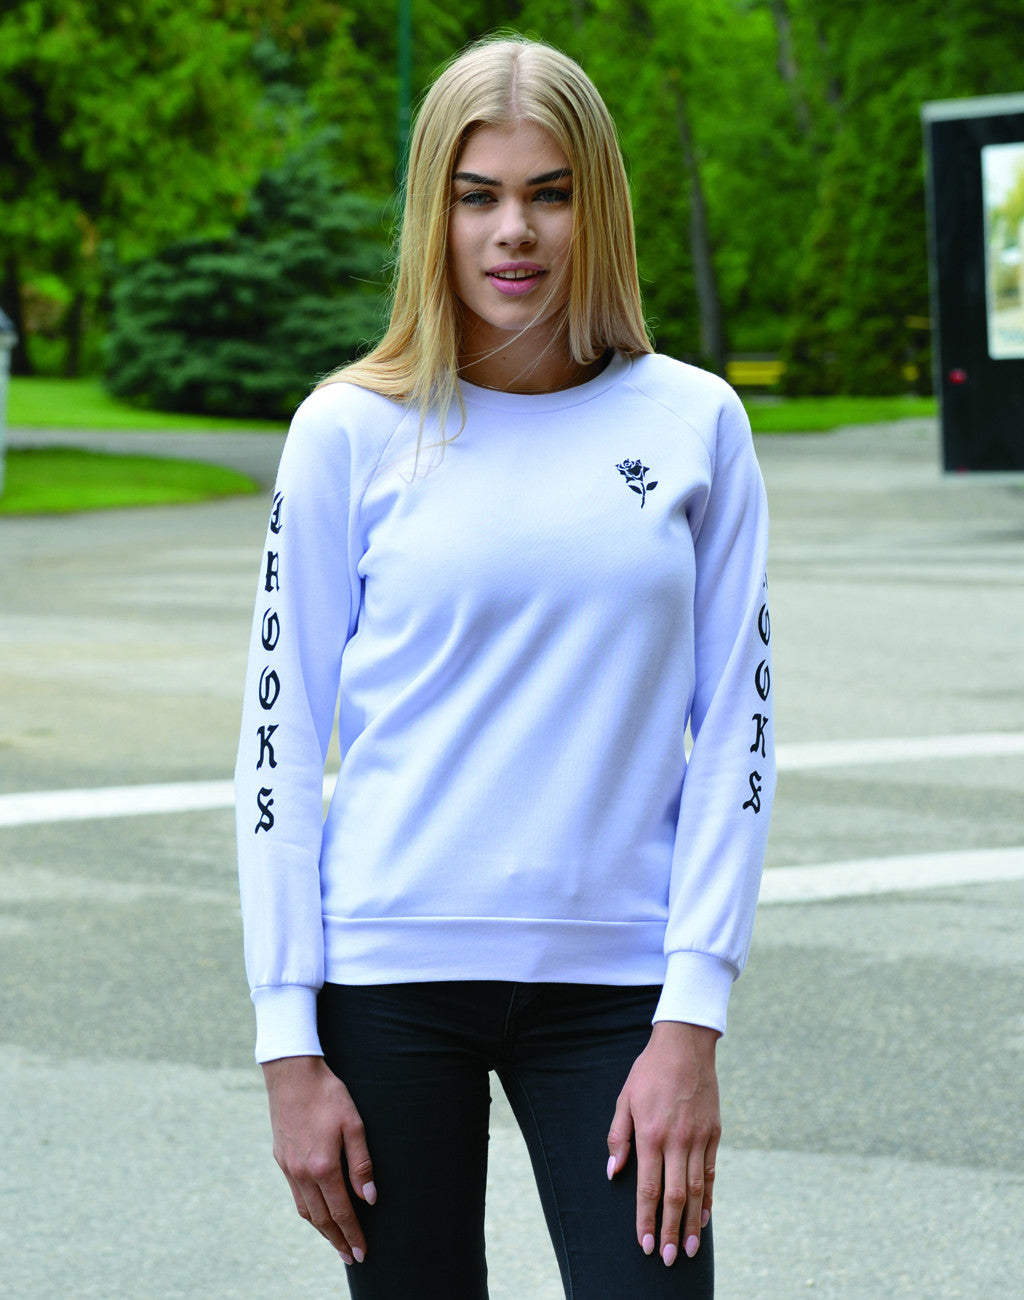 Women's Crooks & Castles Tribute Crew